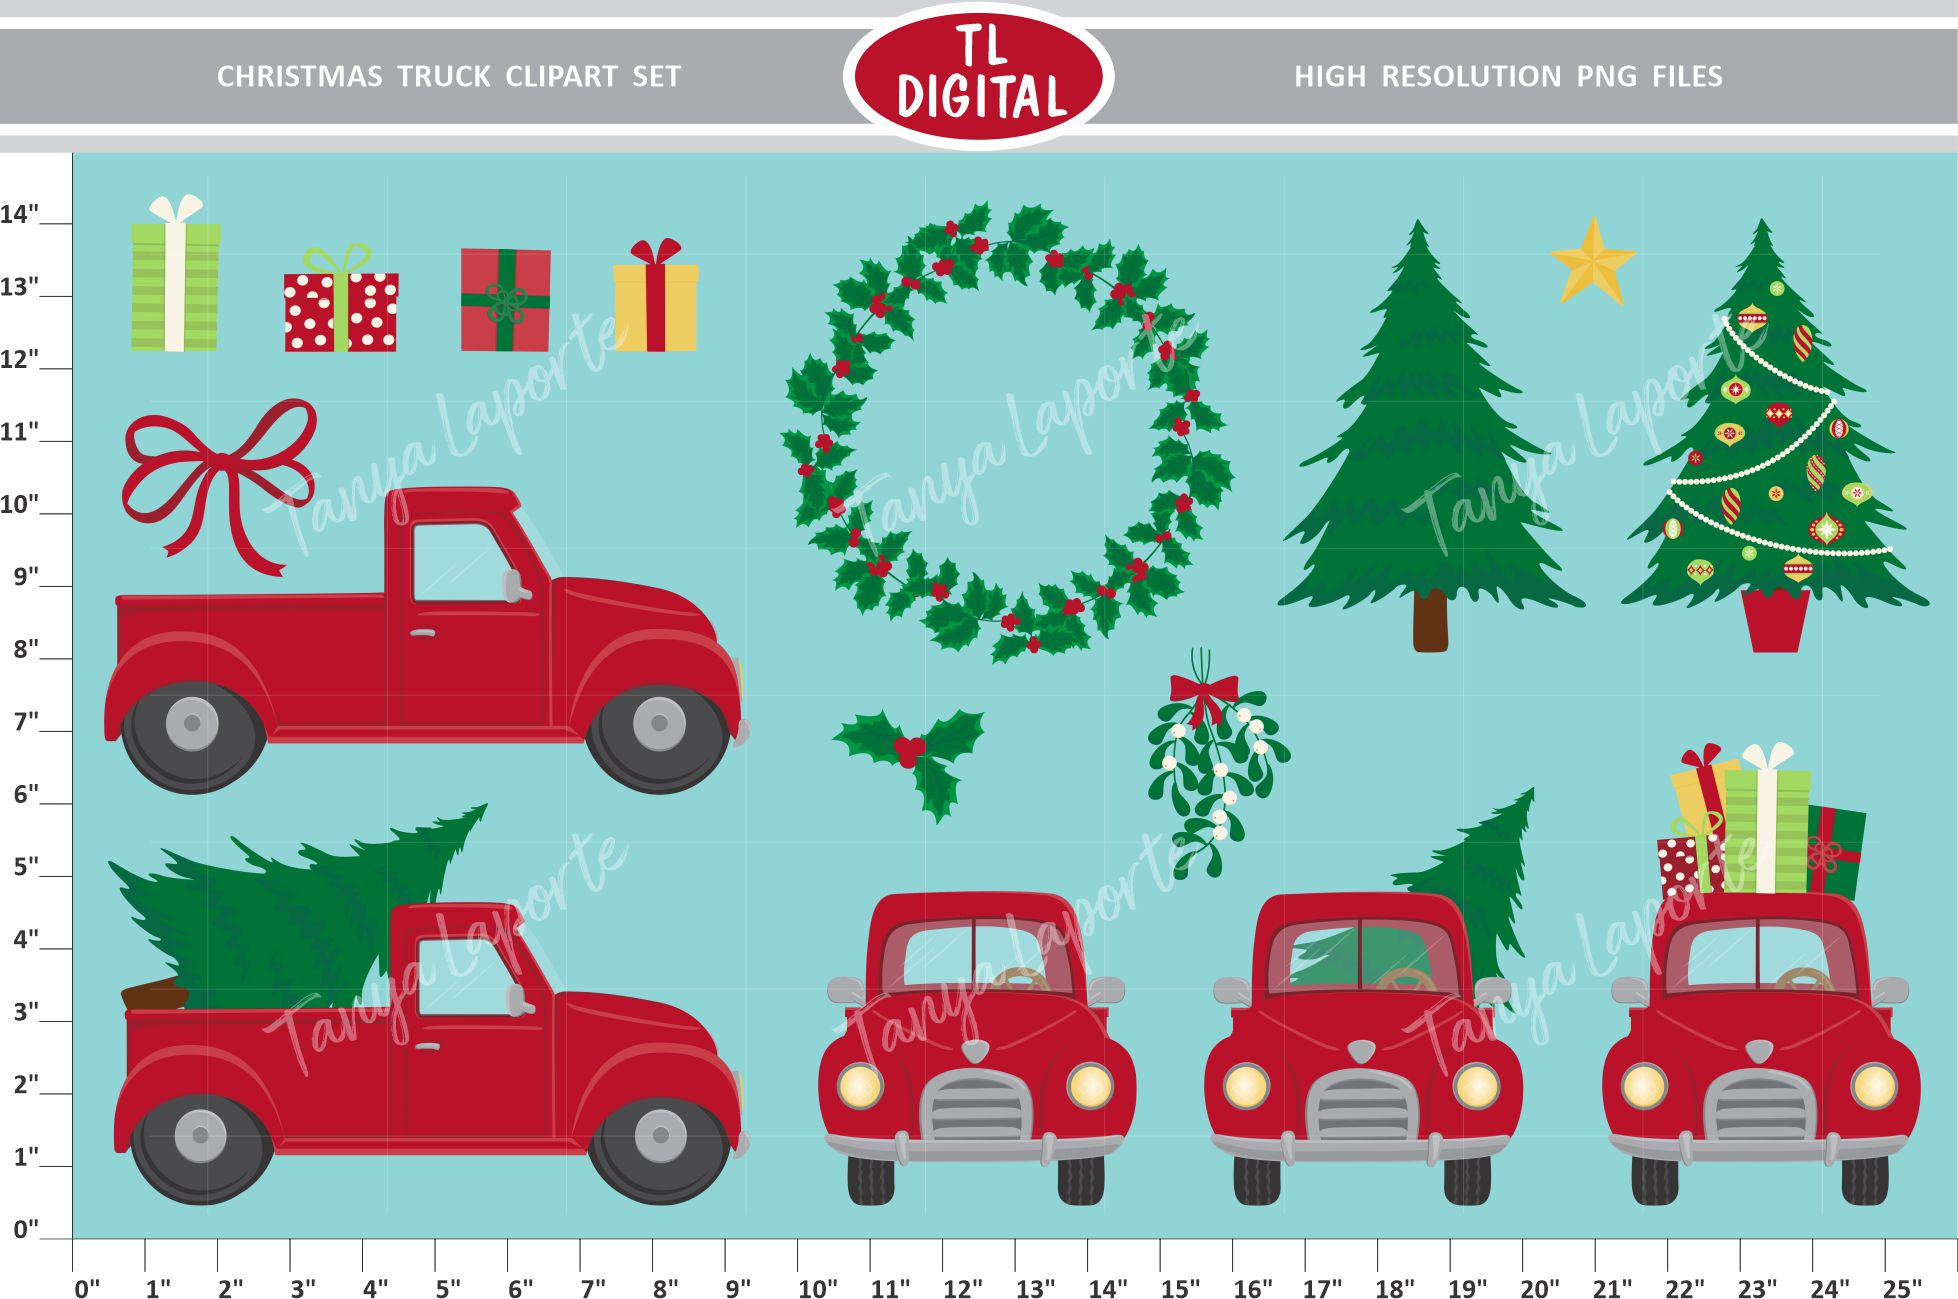 Download Free Christmas Truck Clipart Set Graphic By Tl Digital Creative Fabrica for Cricut Explore, Silhouette and other cutting machines.